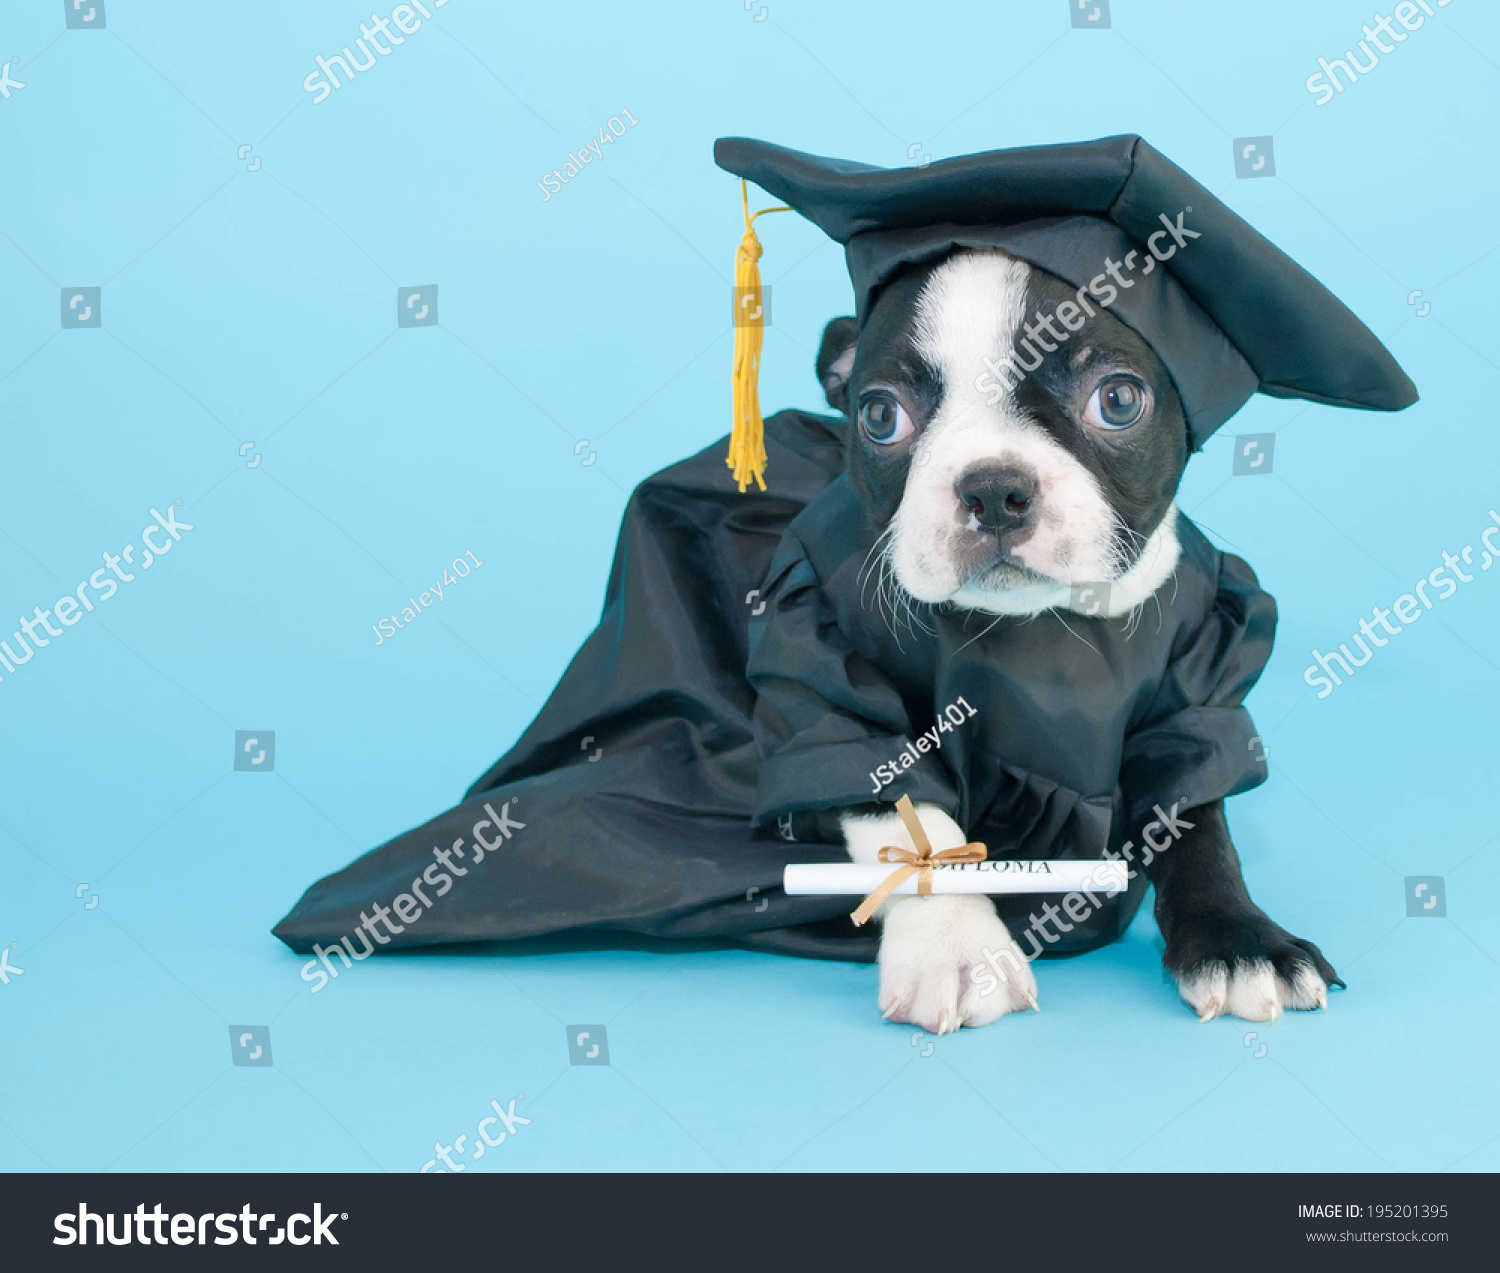 Boston Terrier Puppy Dressed Cap Gown Stock Photo 195201395 ...